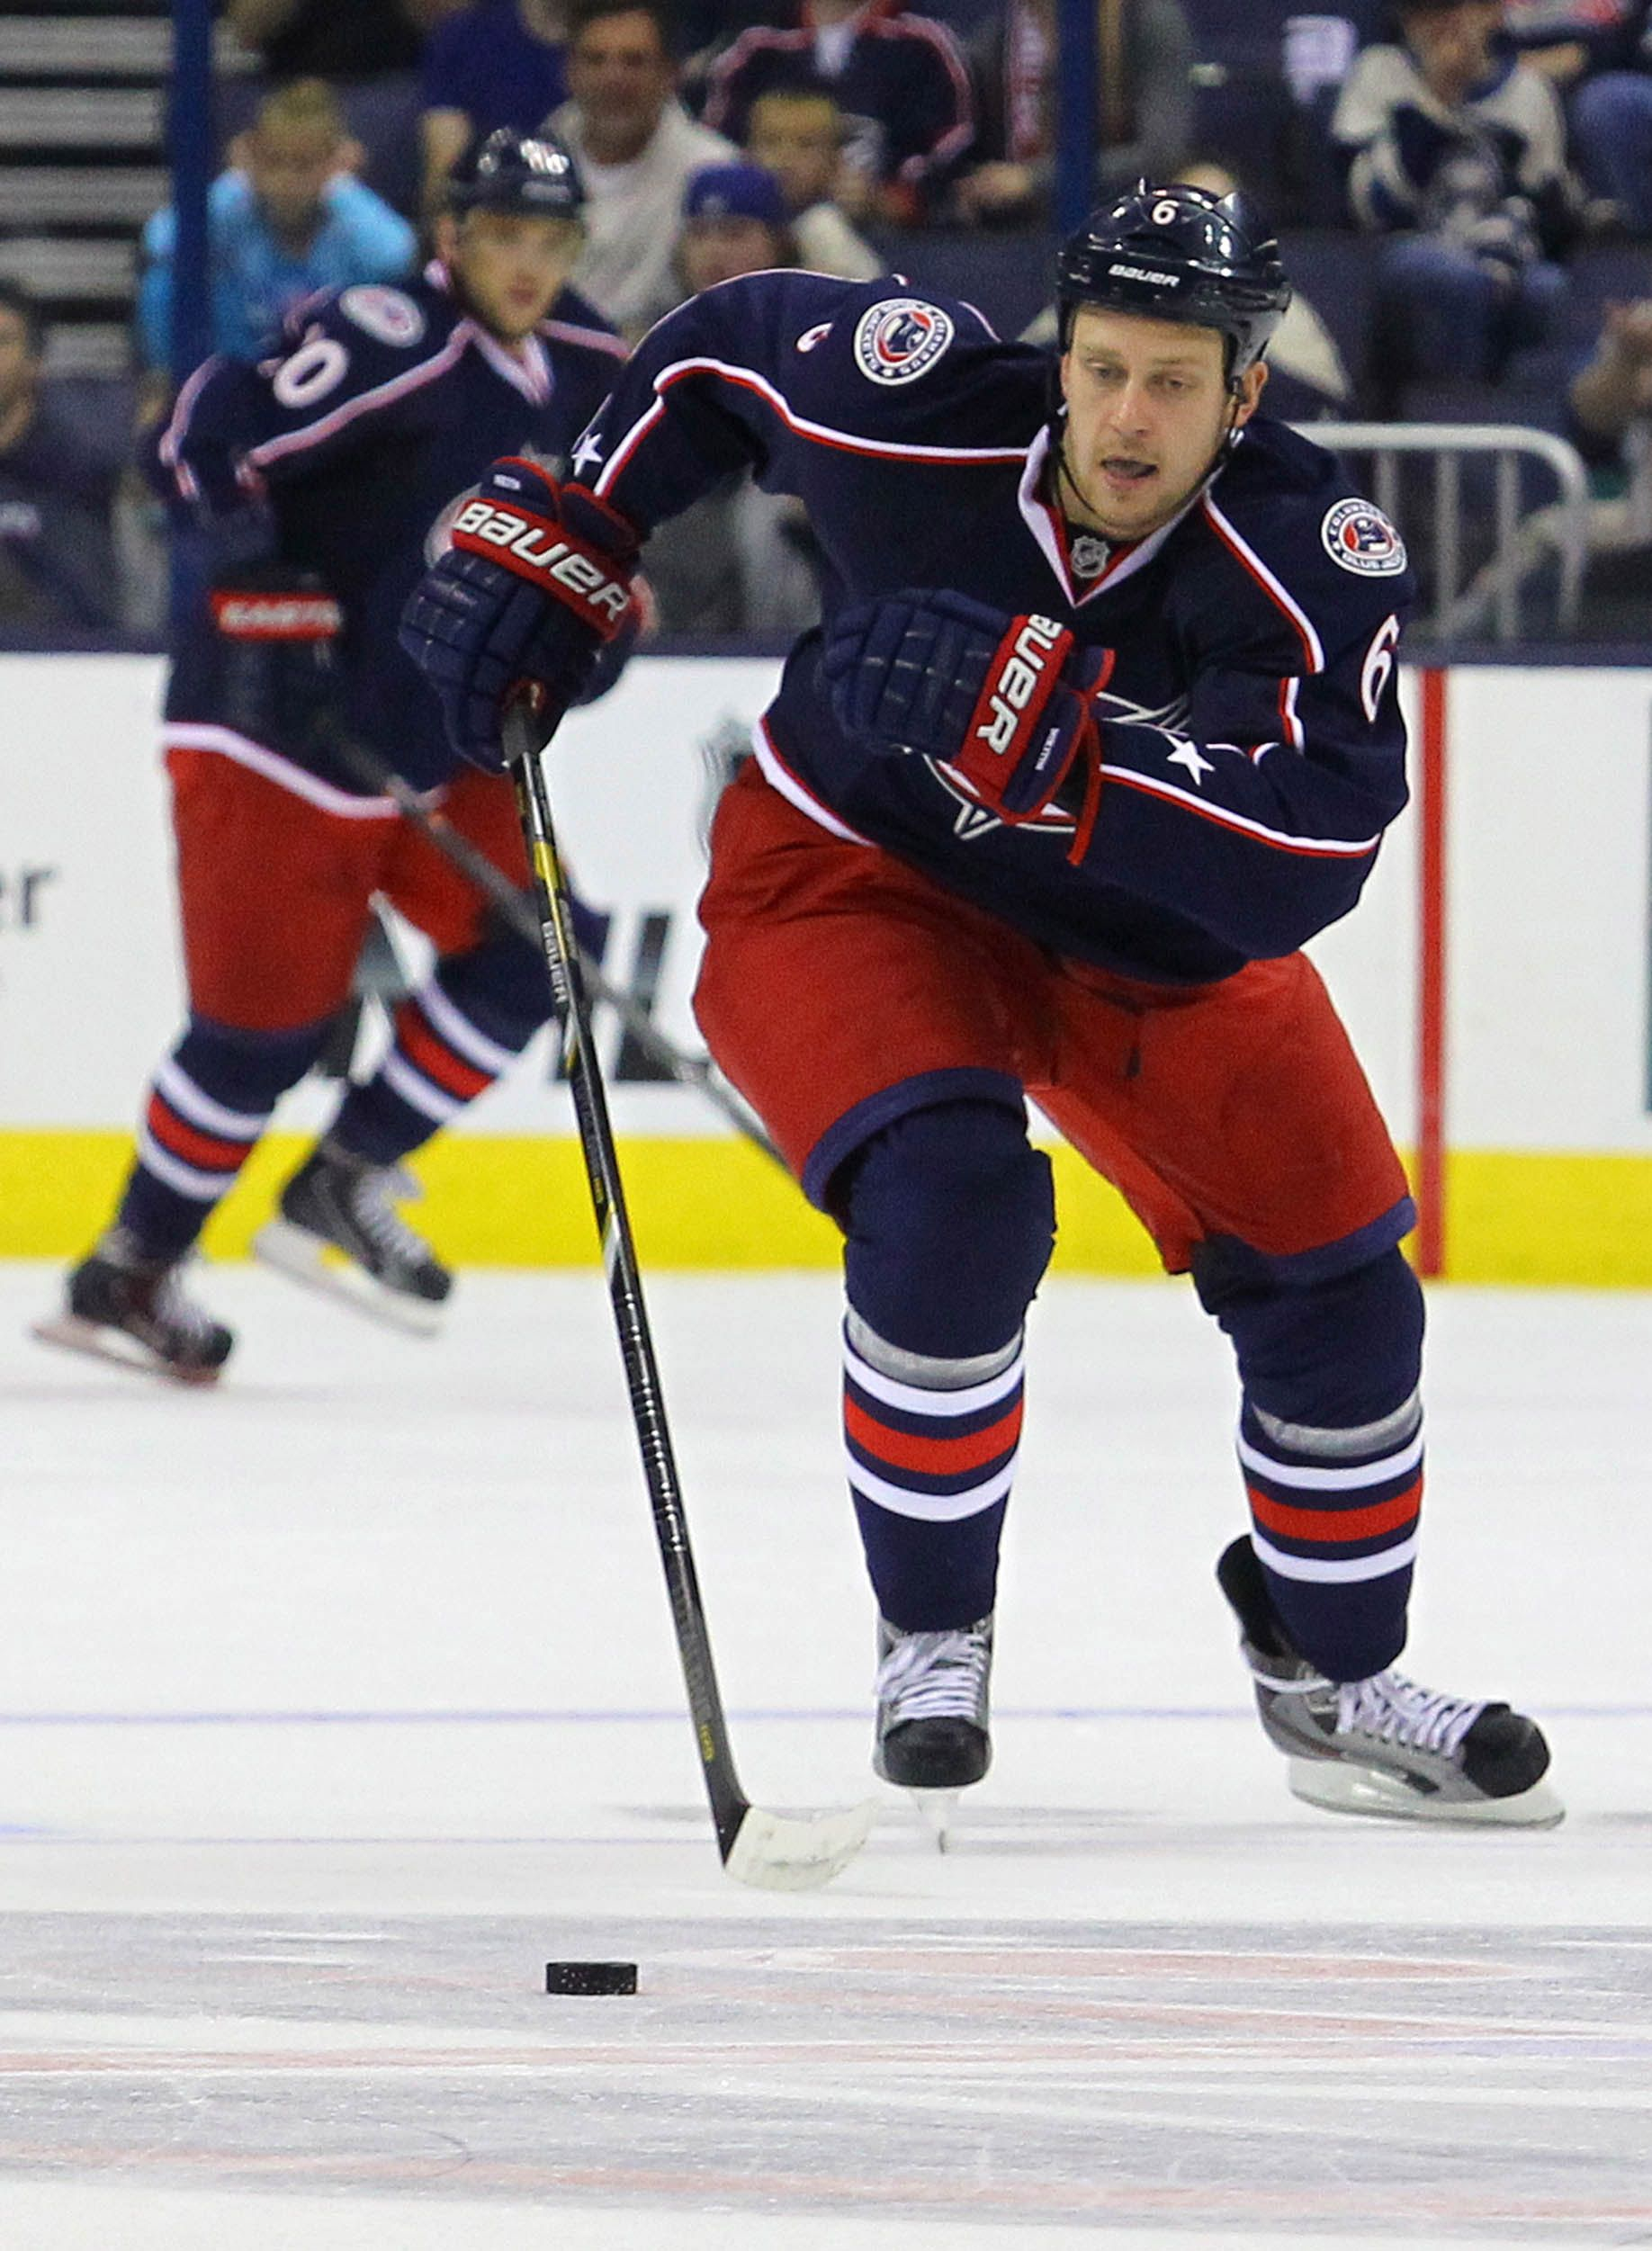 CrowdCam Hot Shot: Columbus Blue Jackets defenseman Mikita Nikitin chases down the puck during the 1st period of the game against the Pittsburgh Penguins at Nationwide Arena. Photo by Rob Leifheit